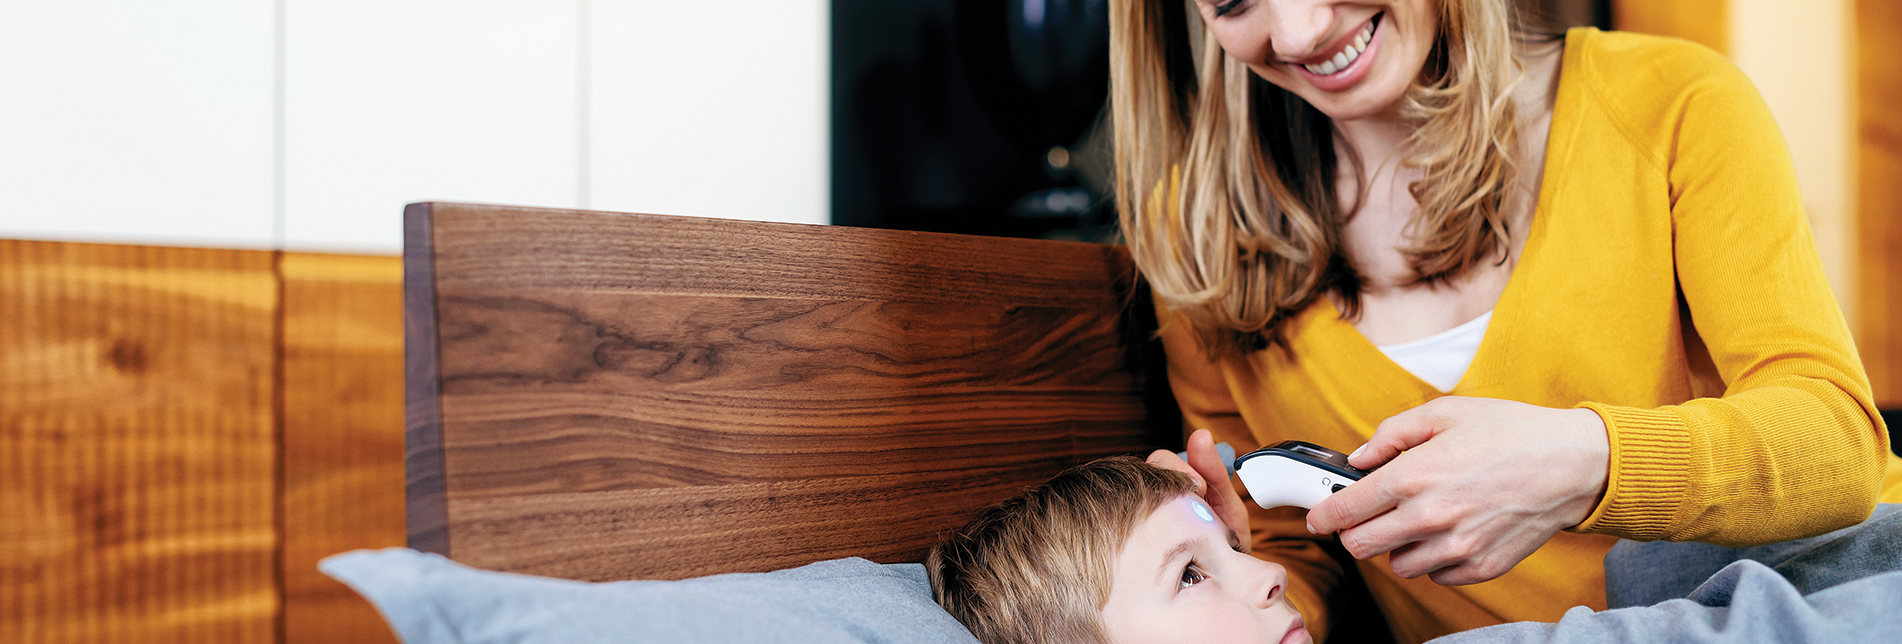 "The Microlife NC 150 BT thermometer connects to the ""Microlife Connected Health +"" app by using Bluetooth® Smart and enables easy monitoring of the temperature."